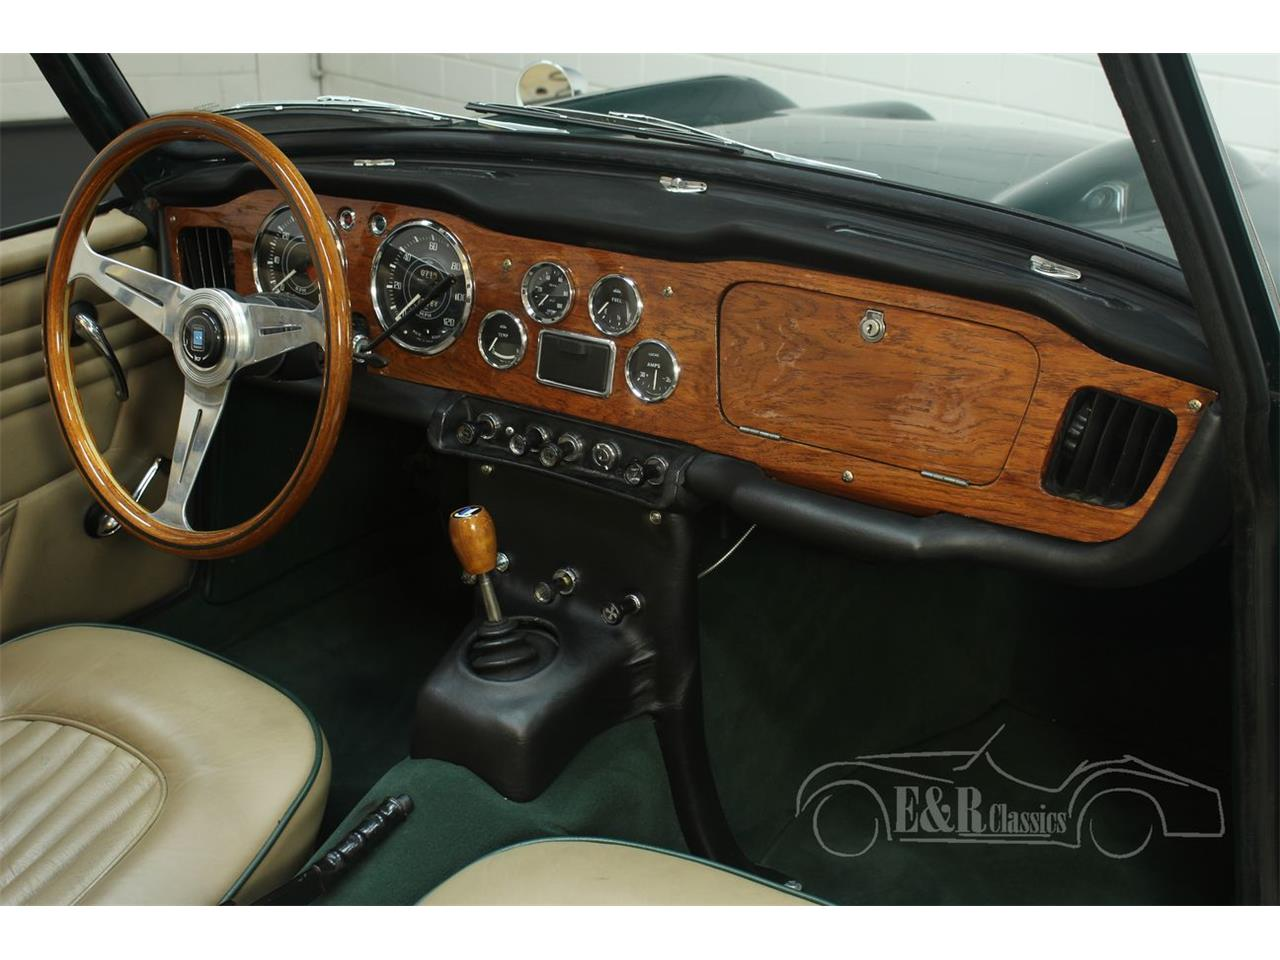 Large Picture of '67 Triumph TR4 located in Noord-Brabant - $55,750.00 - Q45O